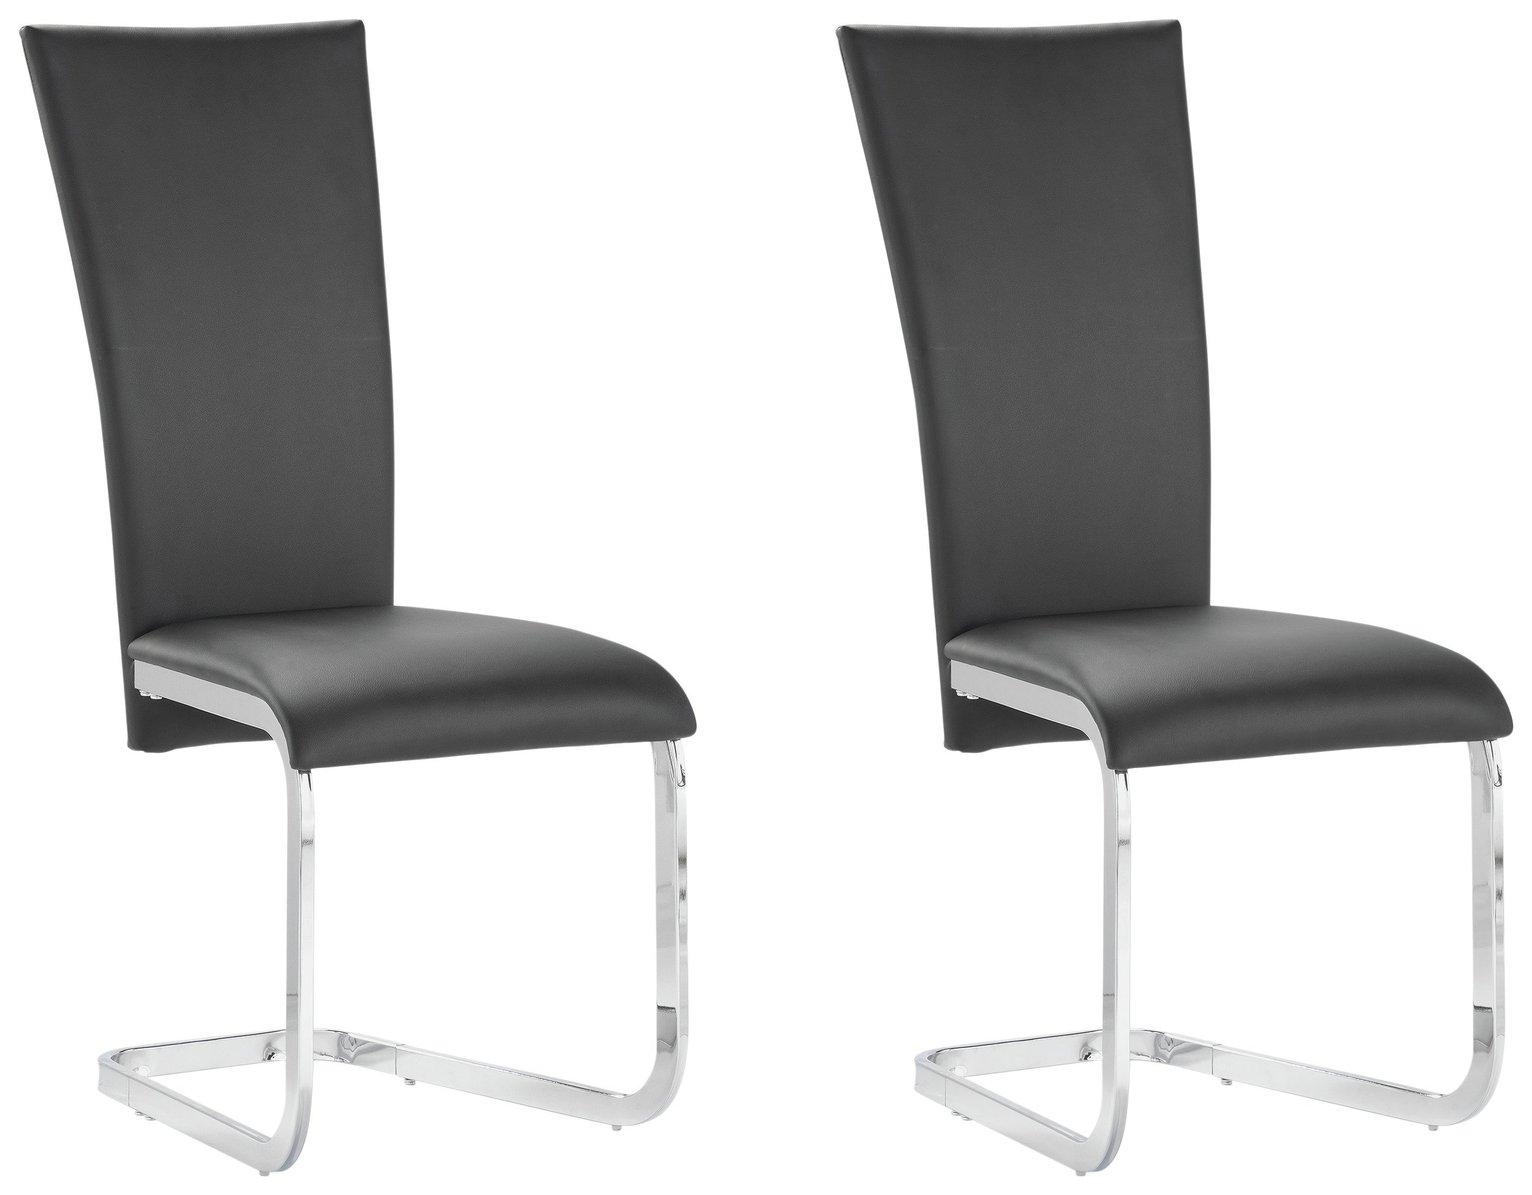 Image of Collection Oriana Pair of Cantilever Chairs - Black